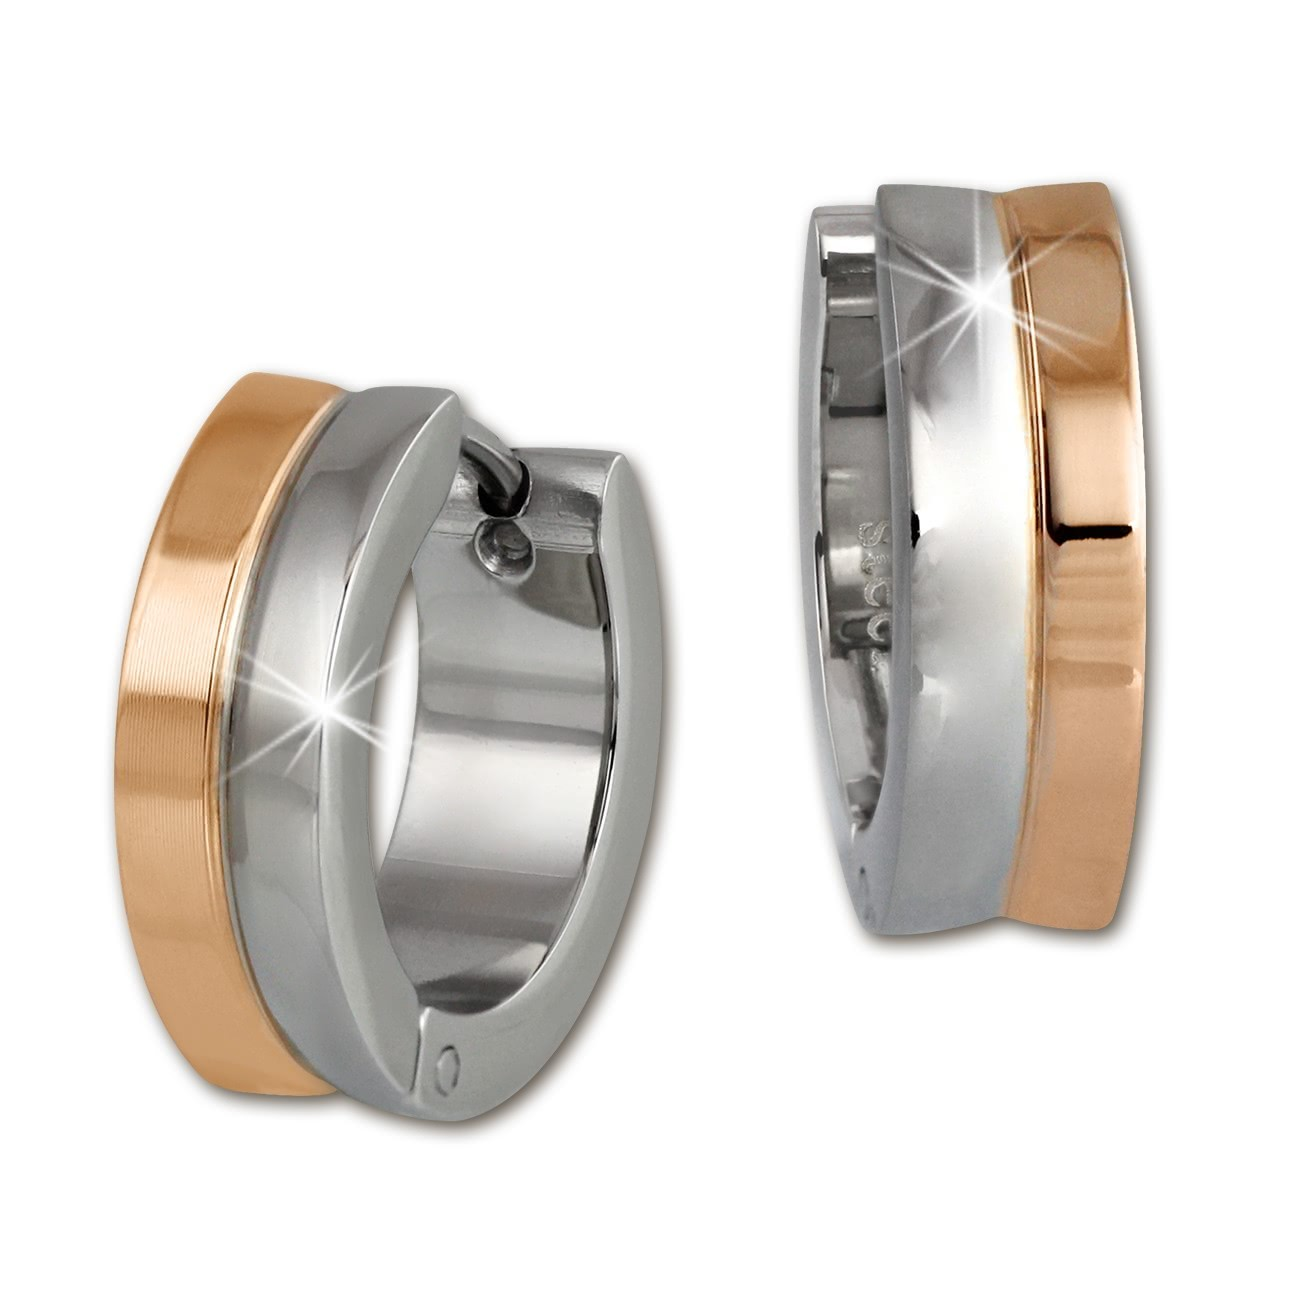 Amello Creole 16mm rose/glanz Edelstahl Ohrring Stainless Steel ESOS97T